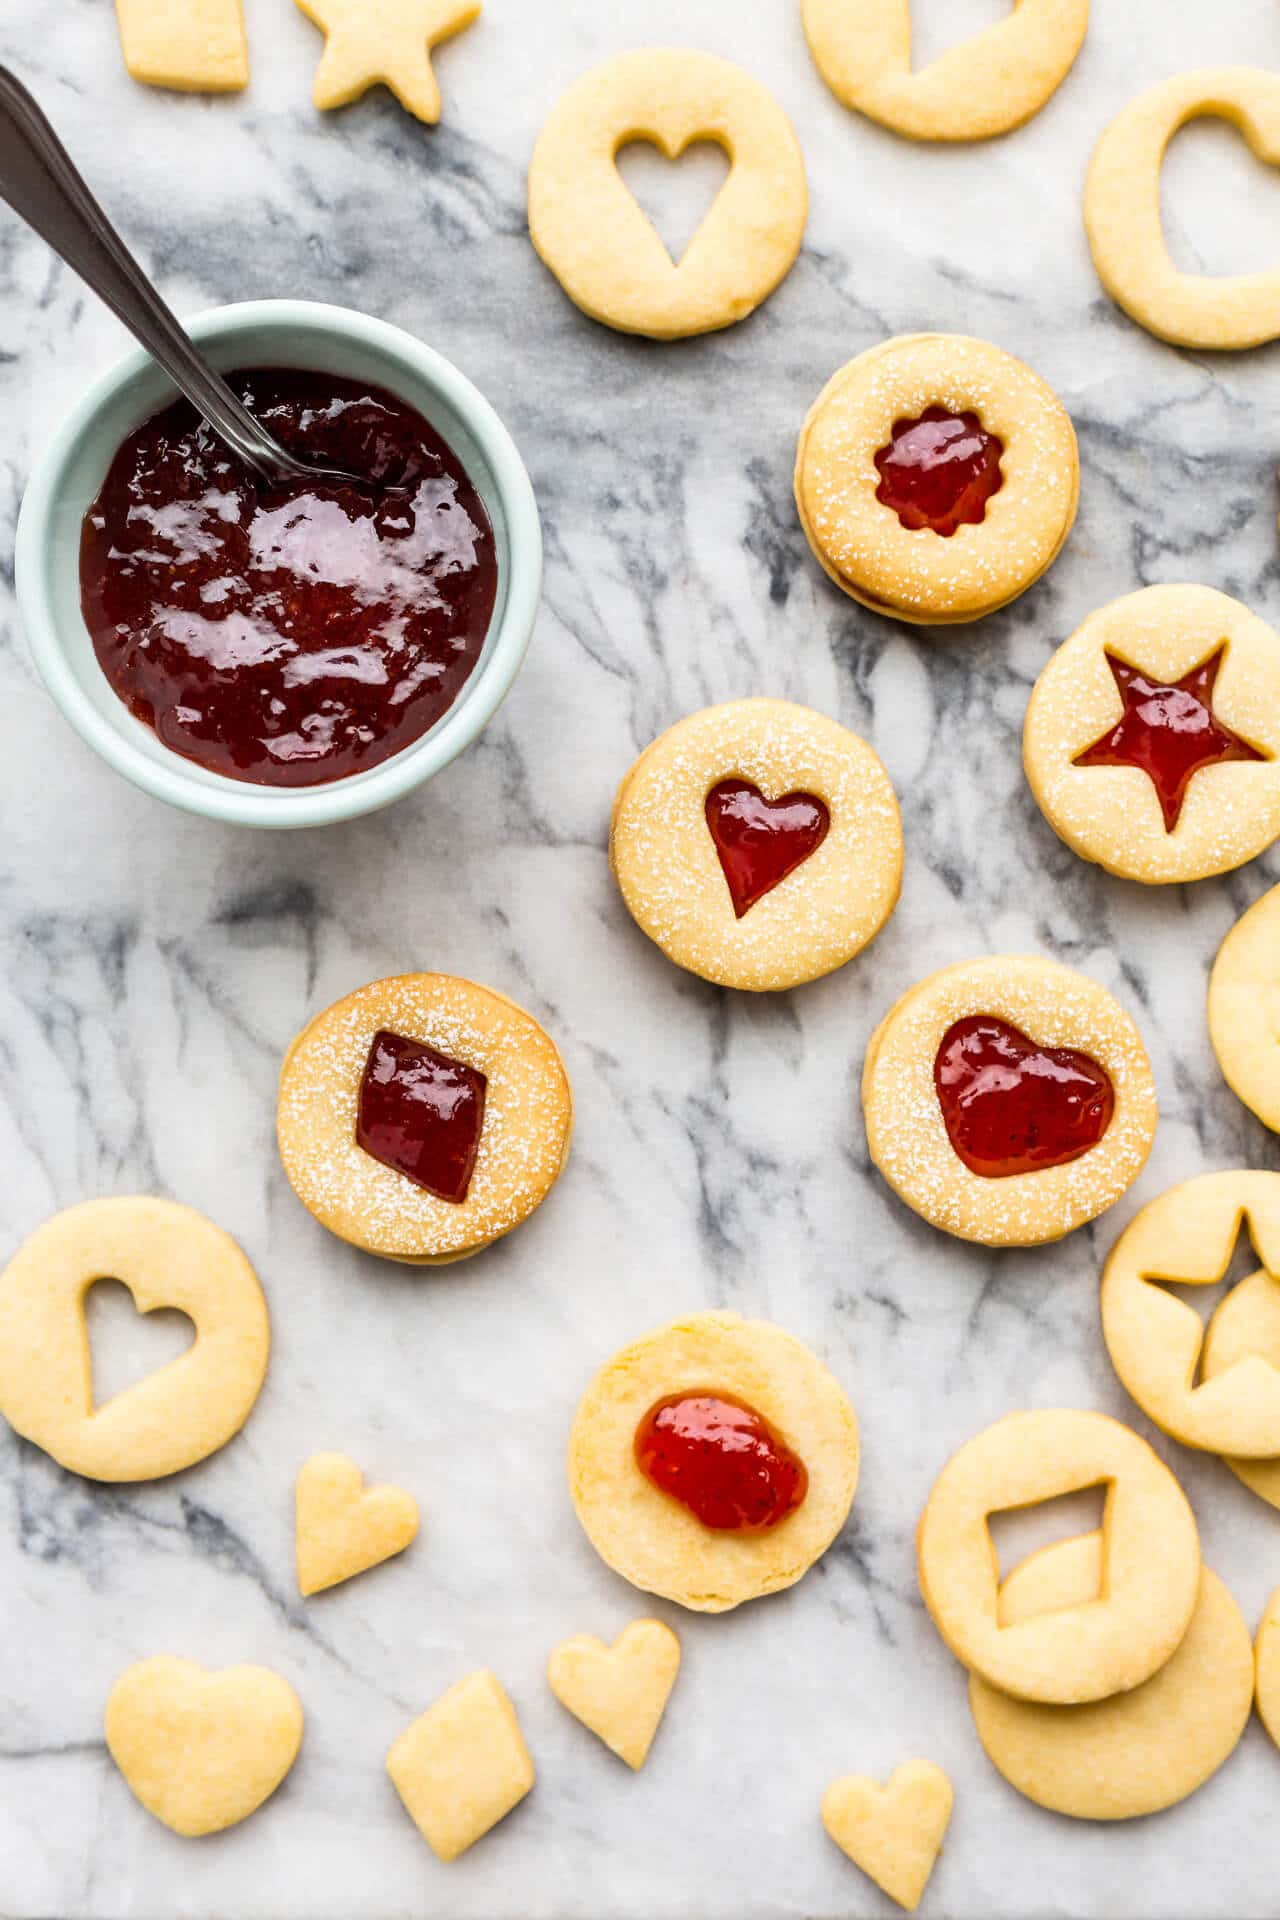 shortbread cutout cookies sandwiched with strawberry jam filling